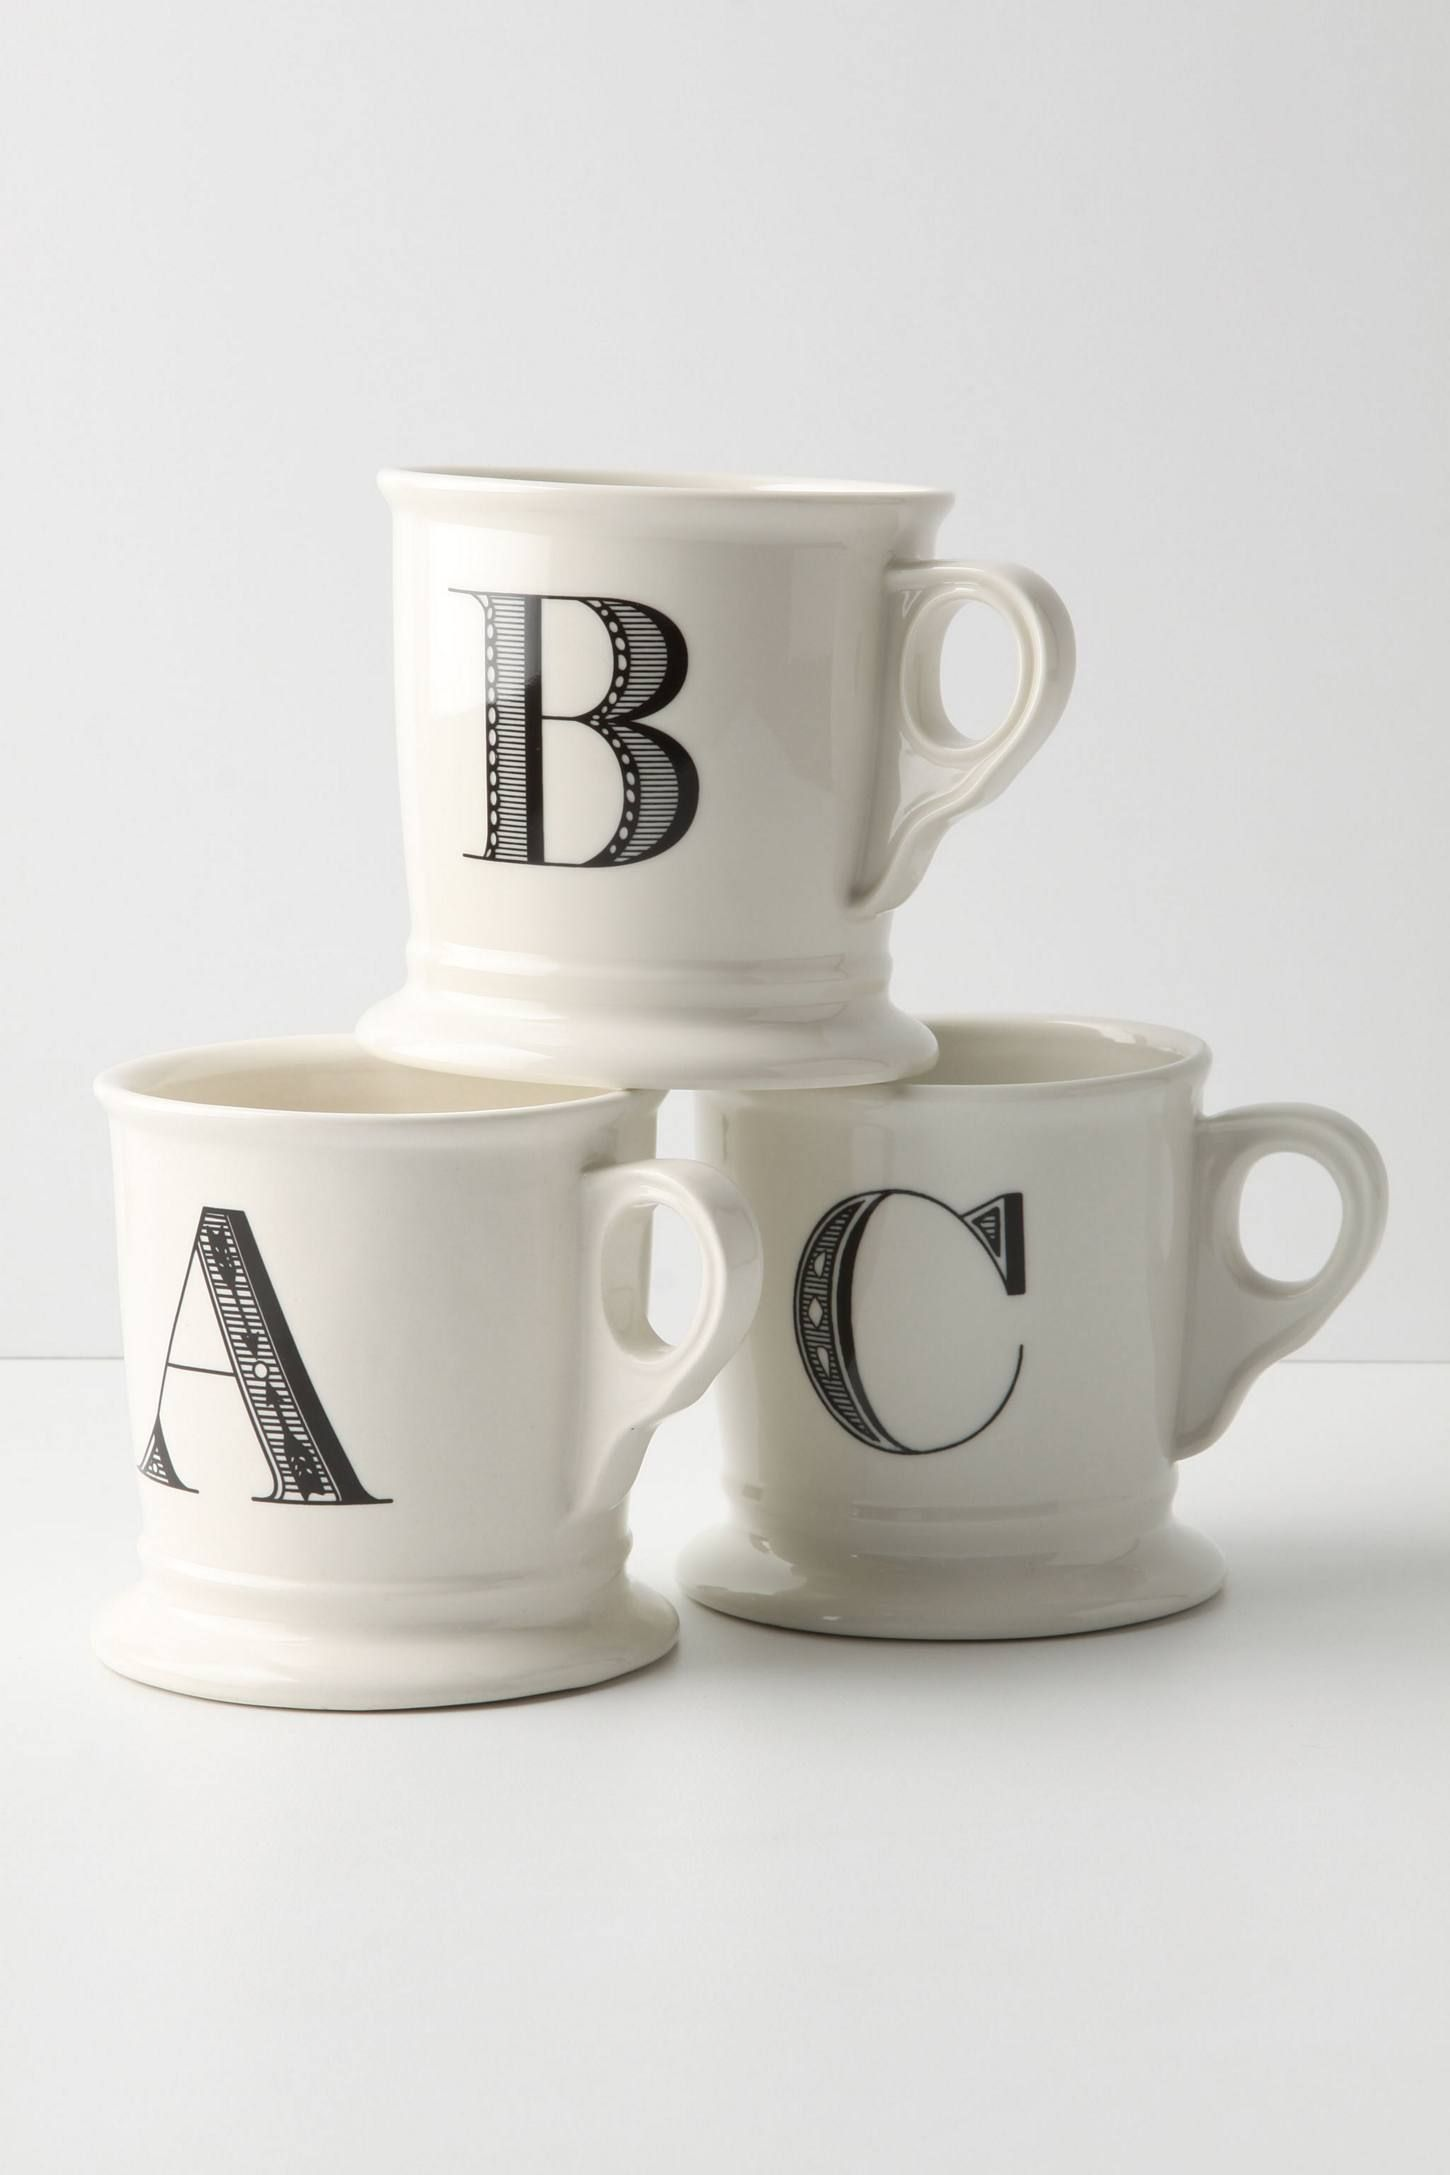 A Monogrammed Mug Anthropologie $8.00 SHOP IT Top off her morning coffee routine with this beautiful monogrammed mug. If you're feeling generous, consider getting yourself, and everyone else in your family, cups too.